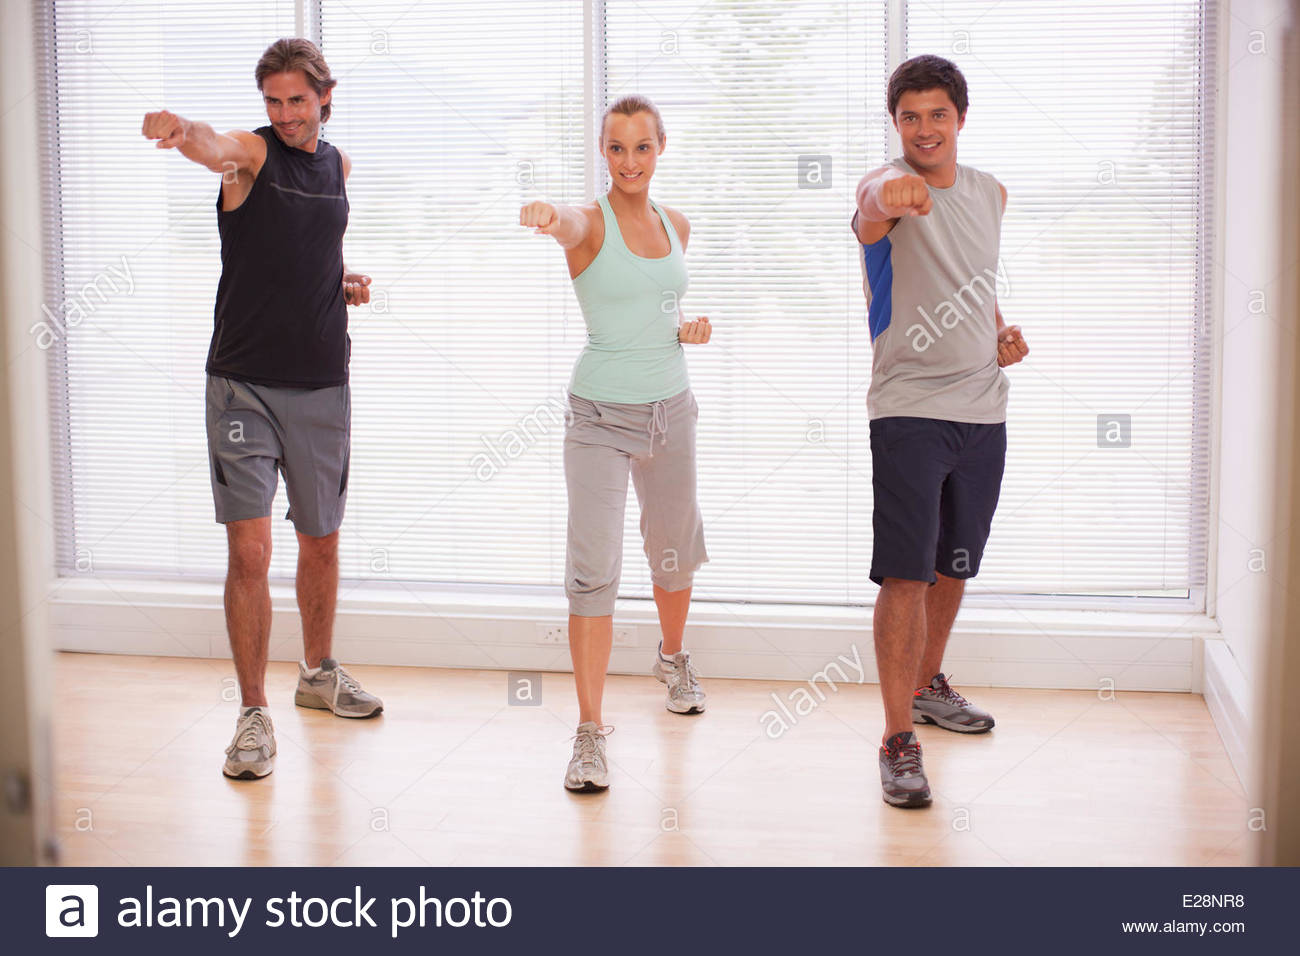 Portrait of smiling people in yoga class Stock Photo